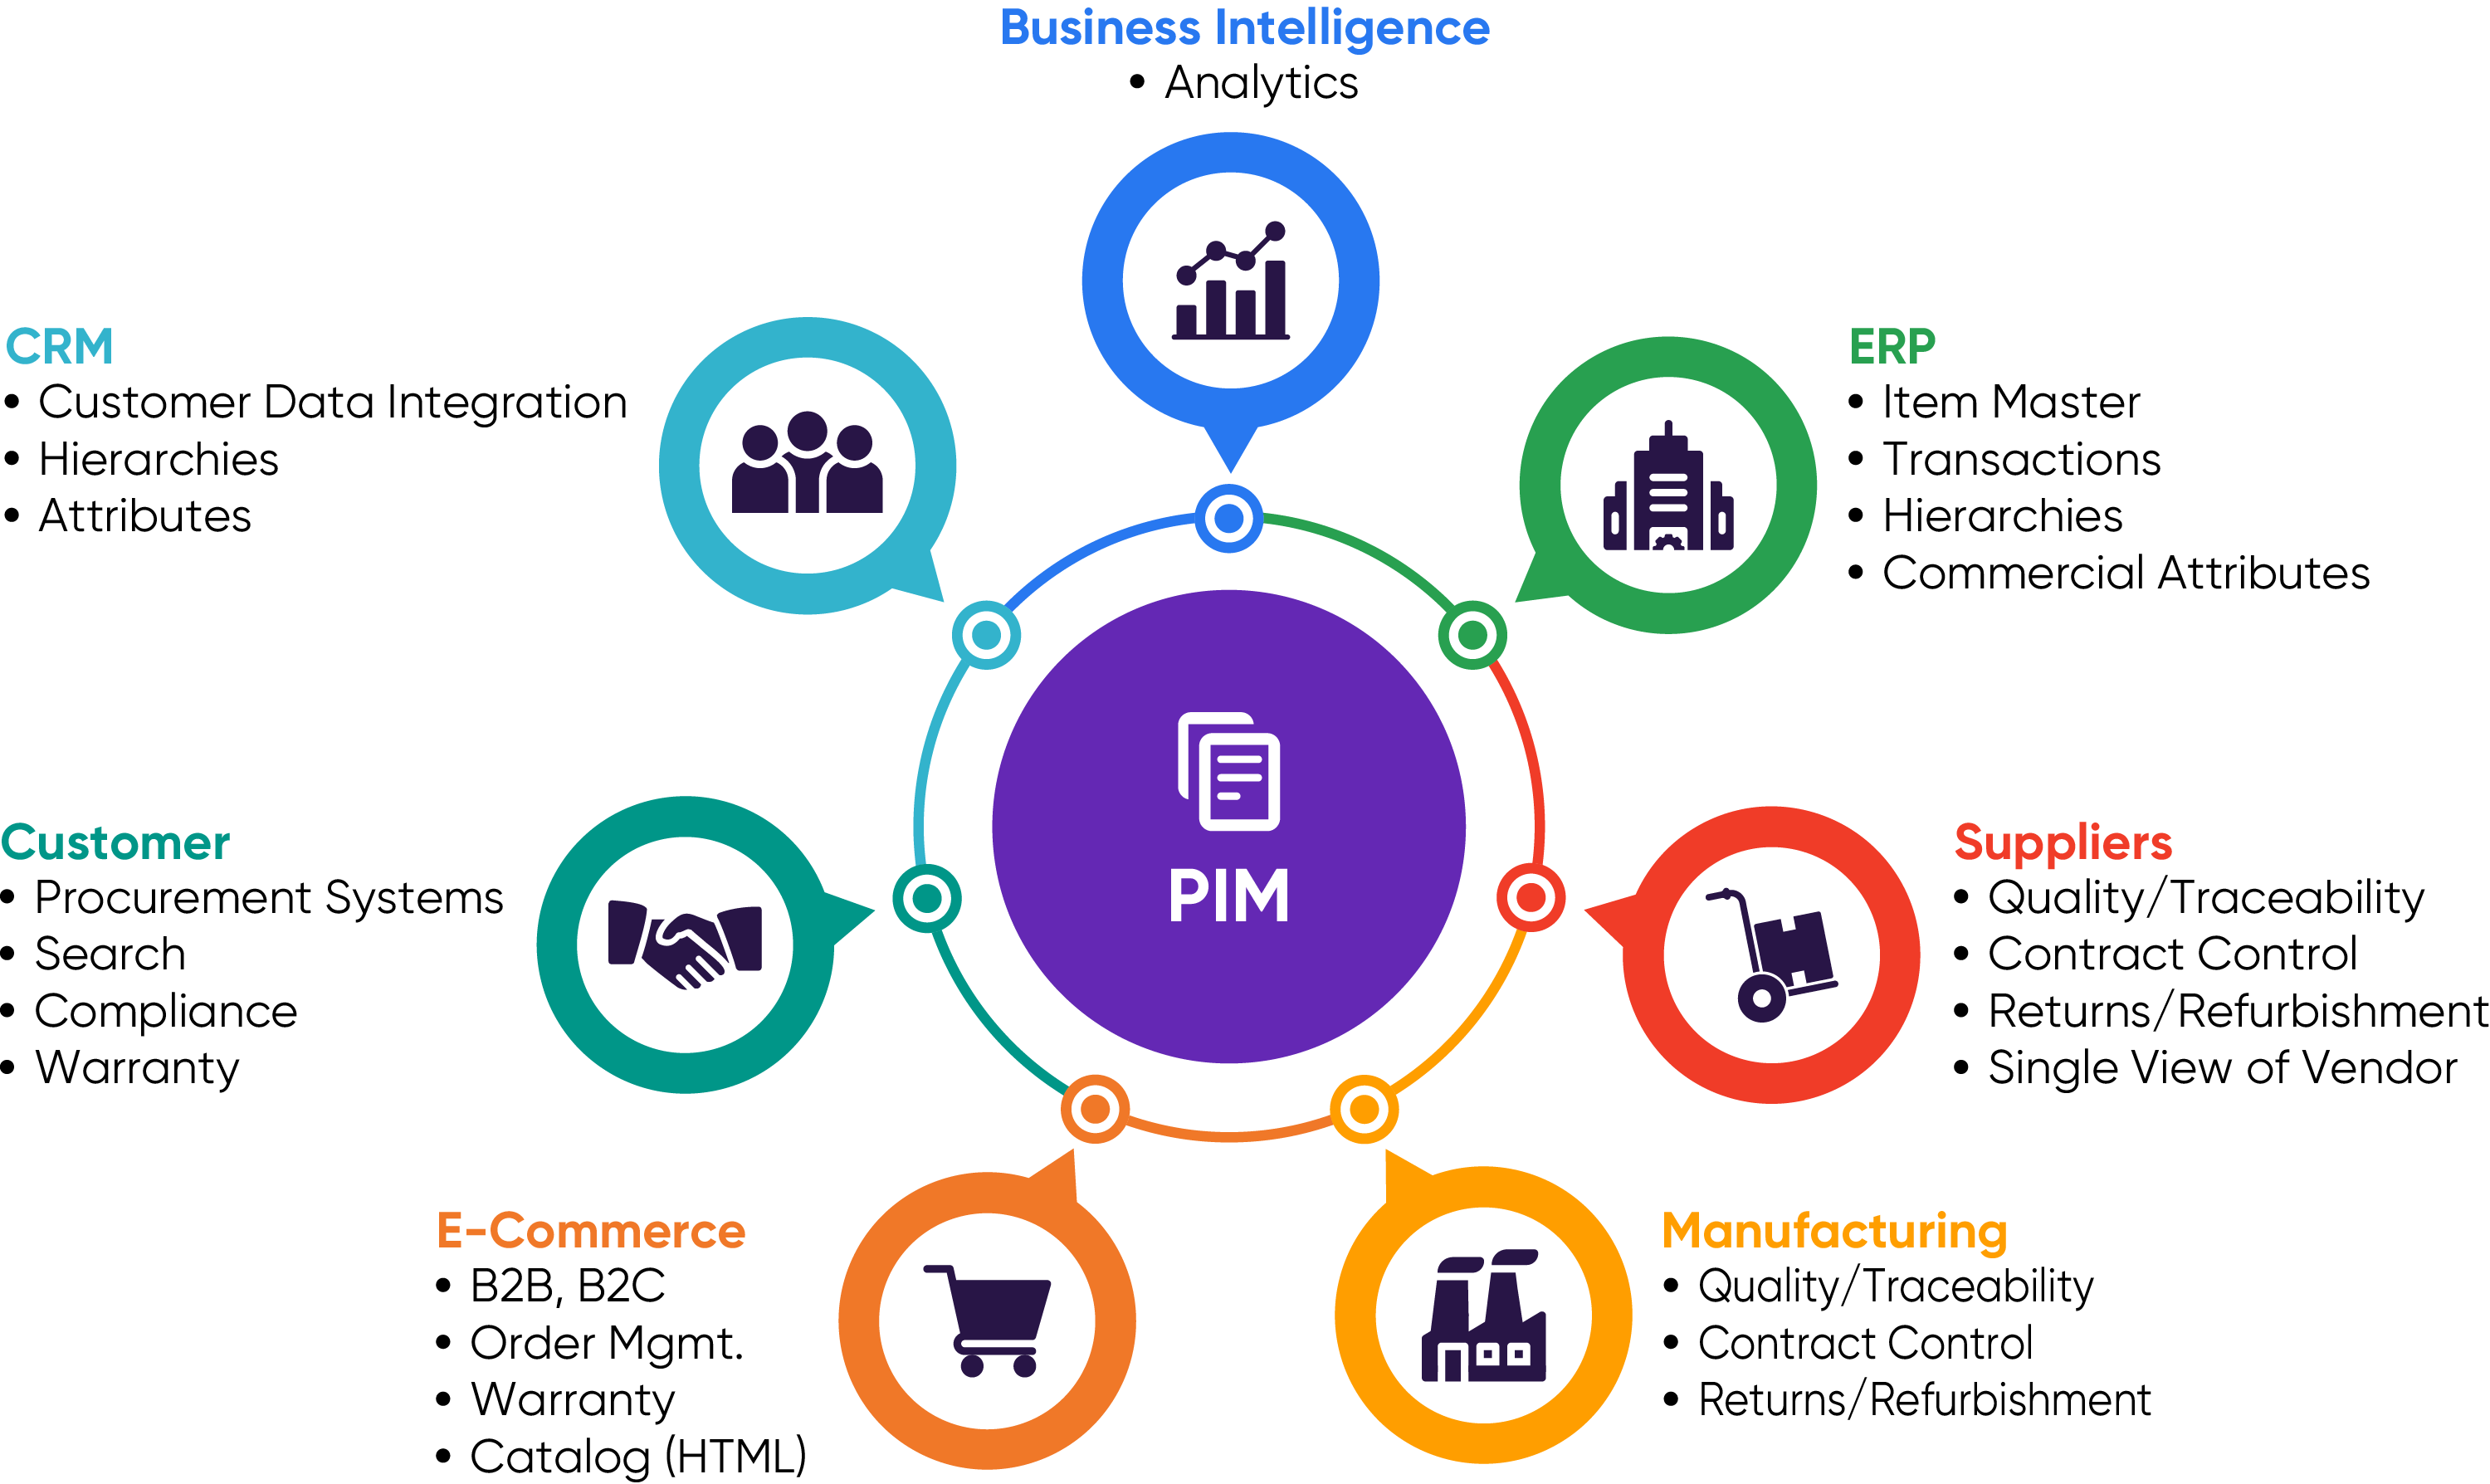 Where does Product Information Management (PIM) Fit? - Pimcore